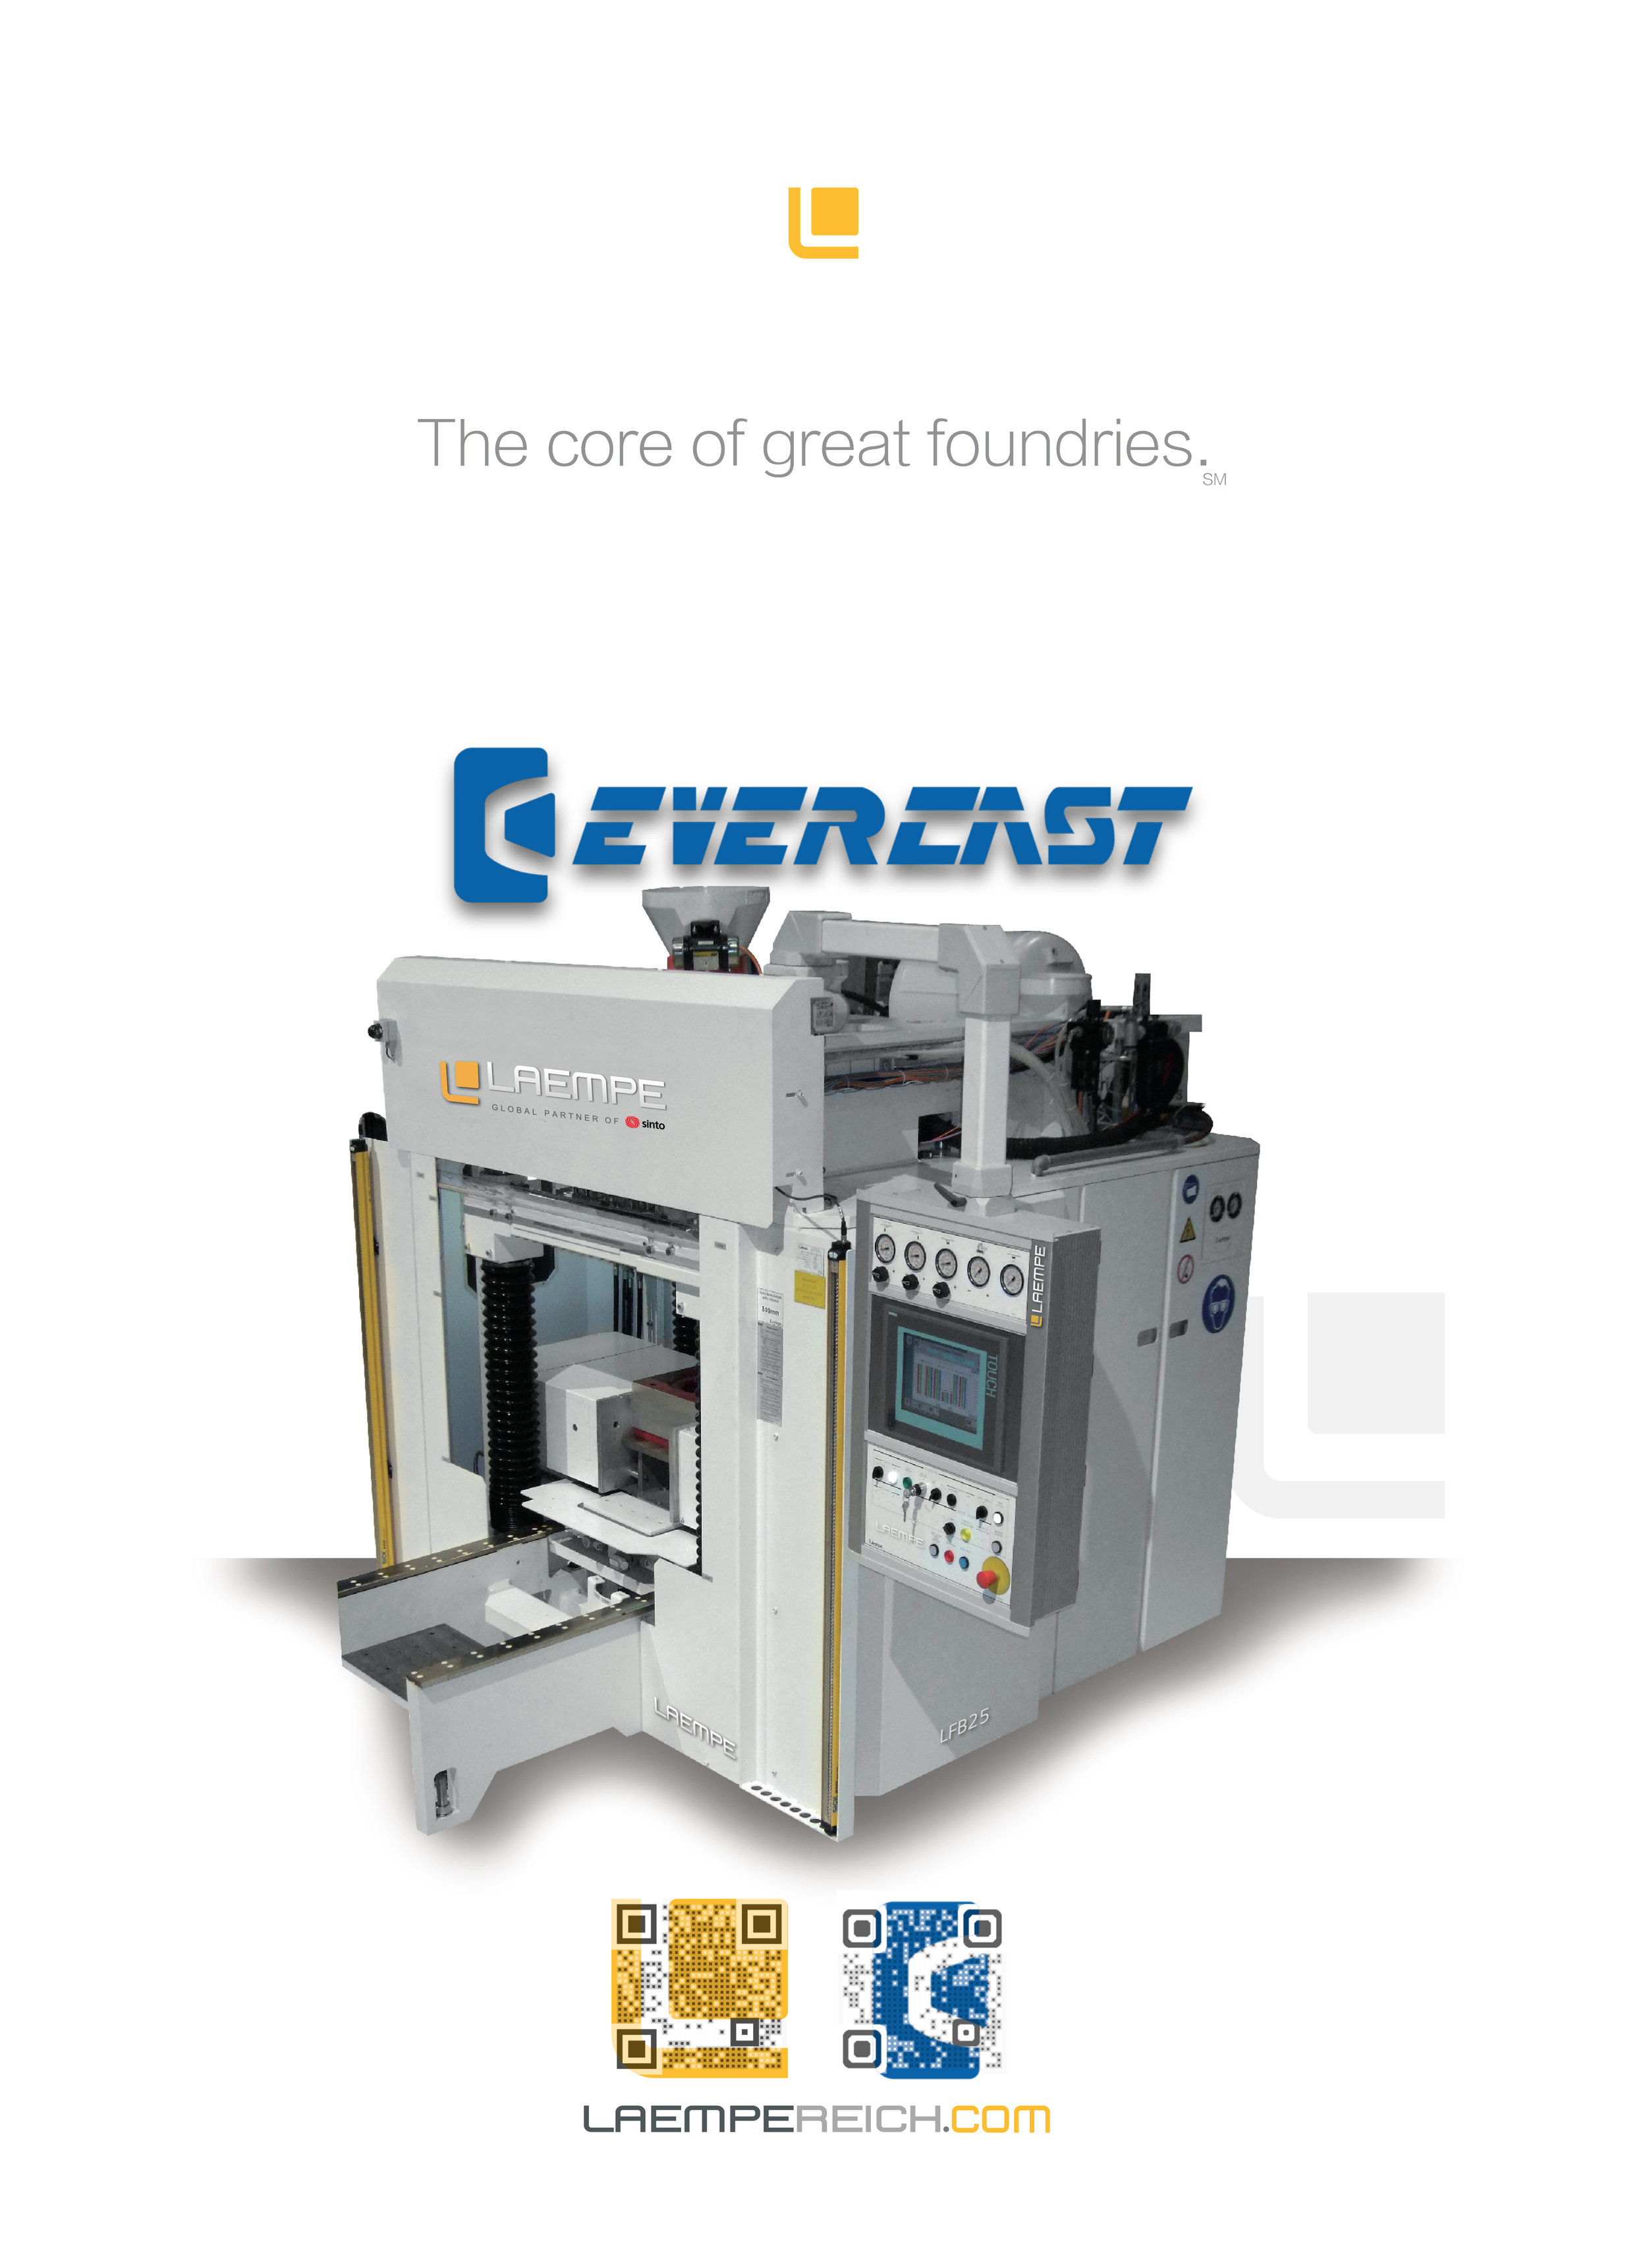 Evercast - LFB25 2015 -  The Core of Great Foundries v2.jpg